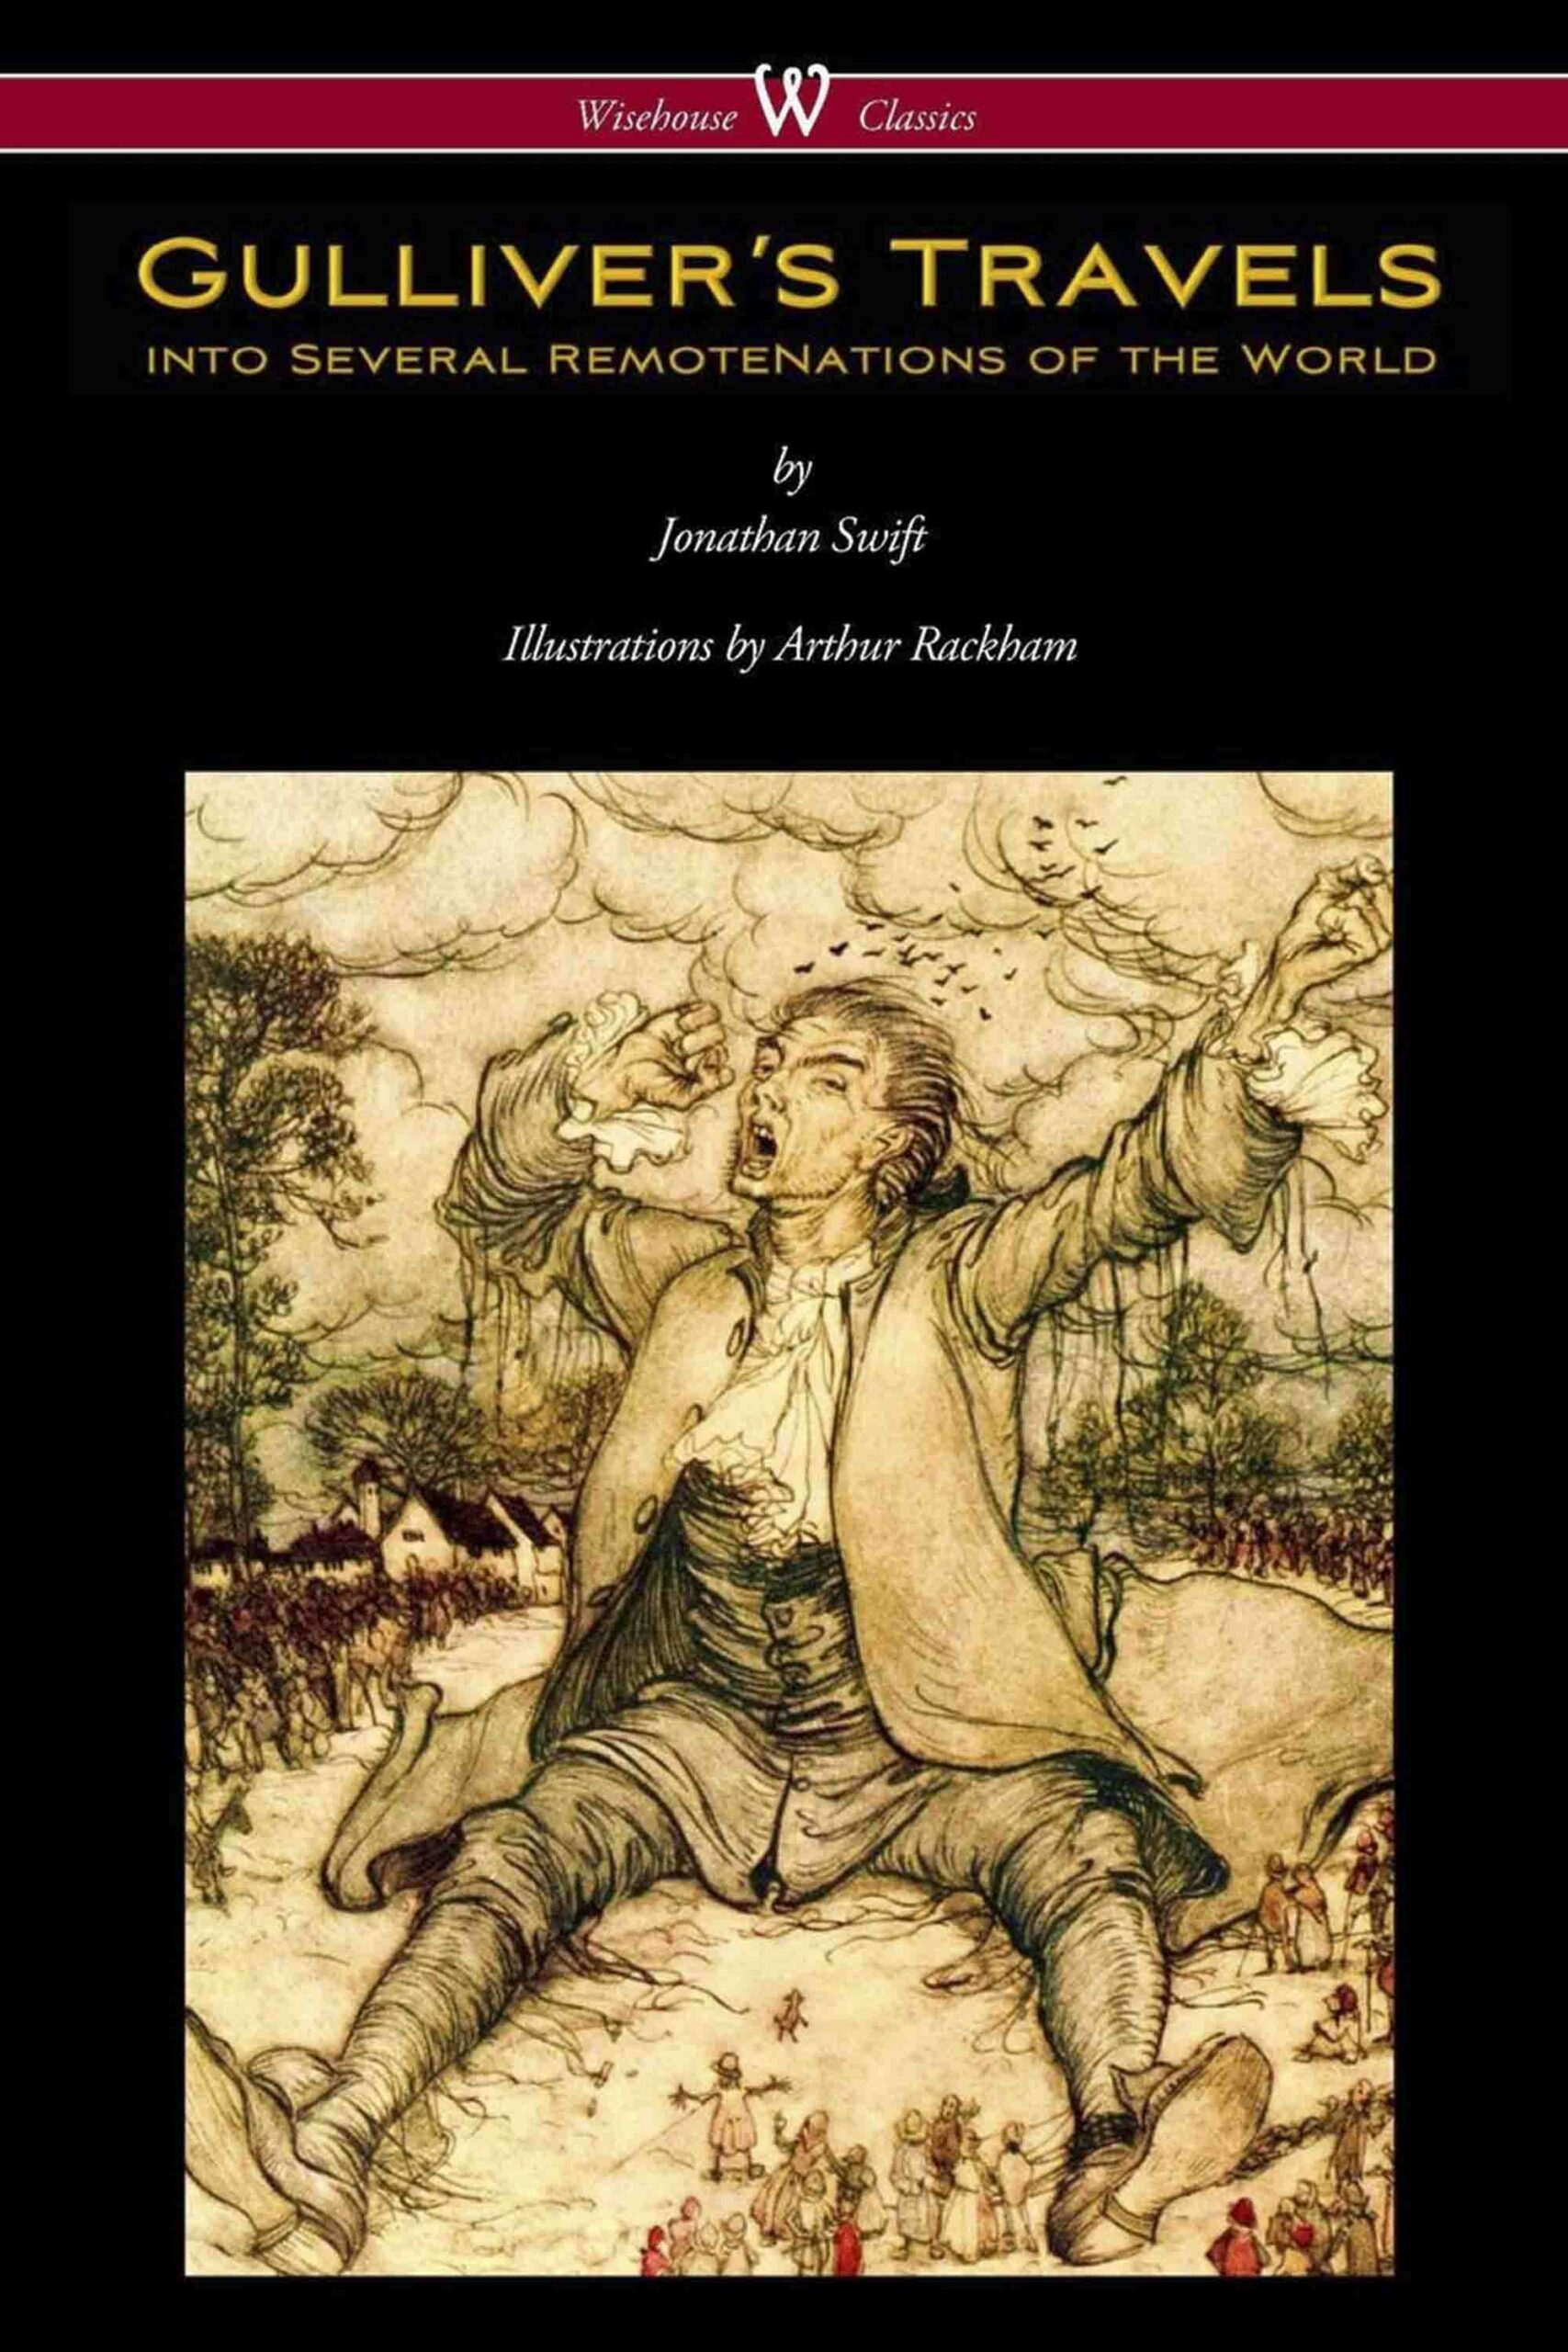 Gulliver's Travels into Several Remote Nations of the World (Wisehouse Classics Edition – With Original Color Illustrations by Arthur Rackham)